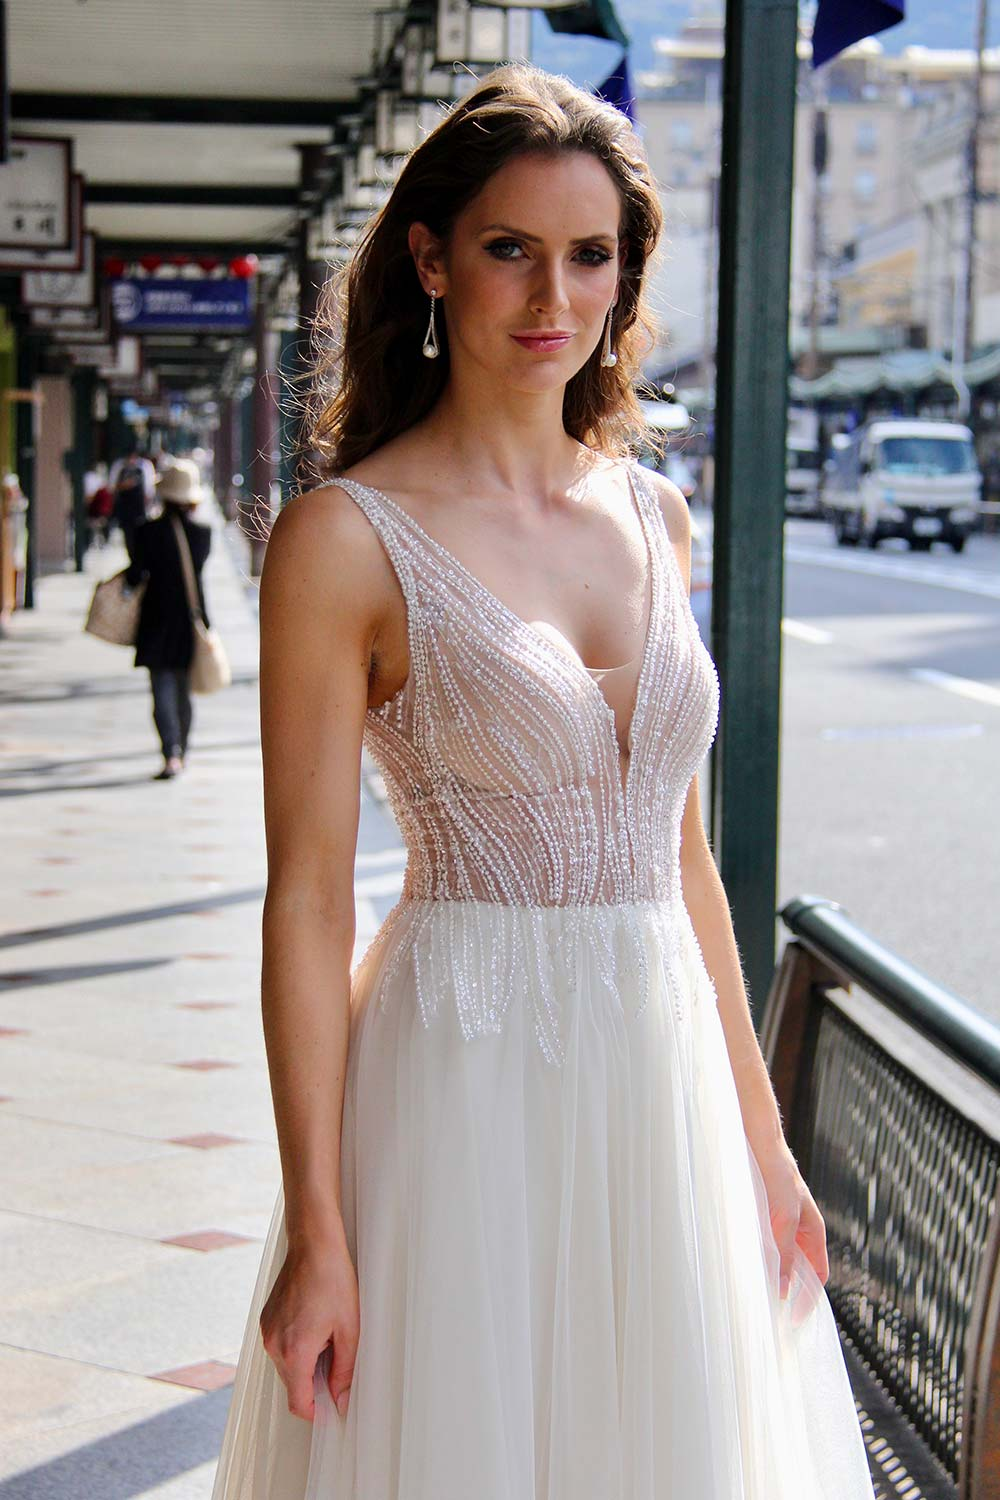 Female model wearing Vinka Design An Oriental Affair Wedding Dress. On a Japanese street the front detail of a gown with a hand-beaded, nude-based, semi sheer bodice with a deep v-neckline and low back with a tulle skirt.